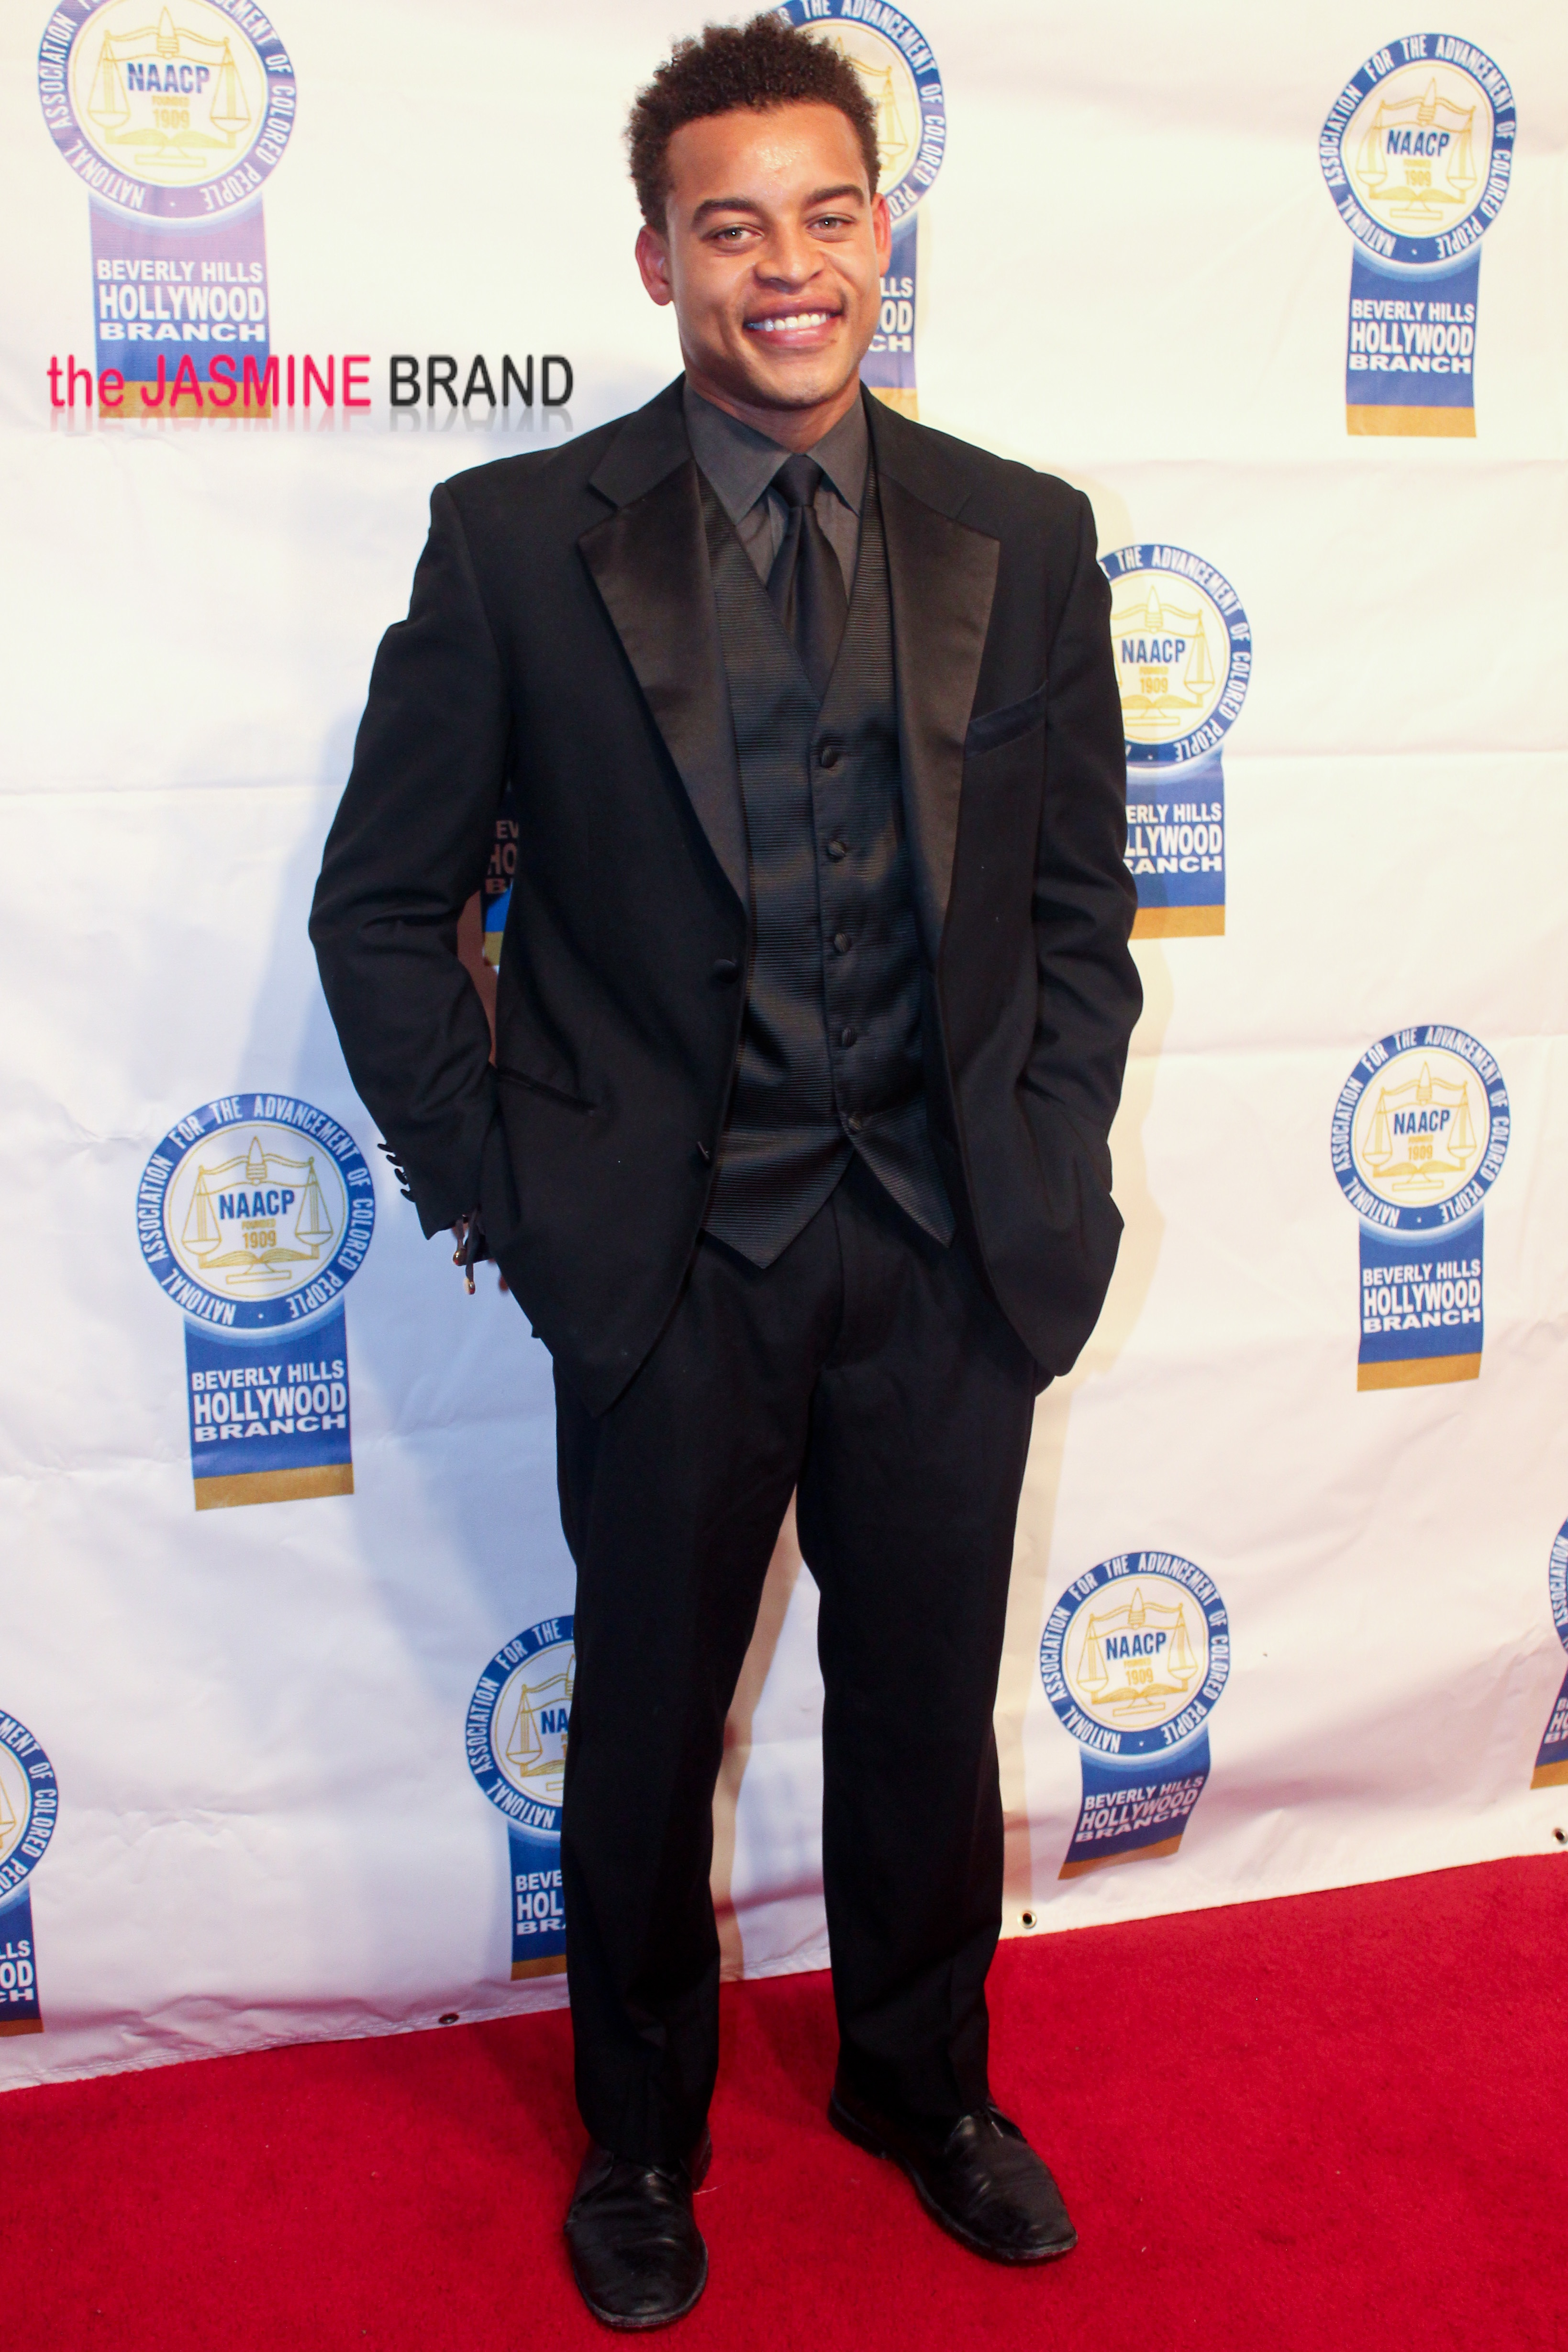 naacp theater awards 2013-the jasmine brand